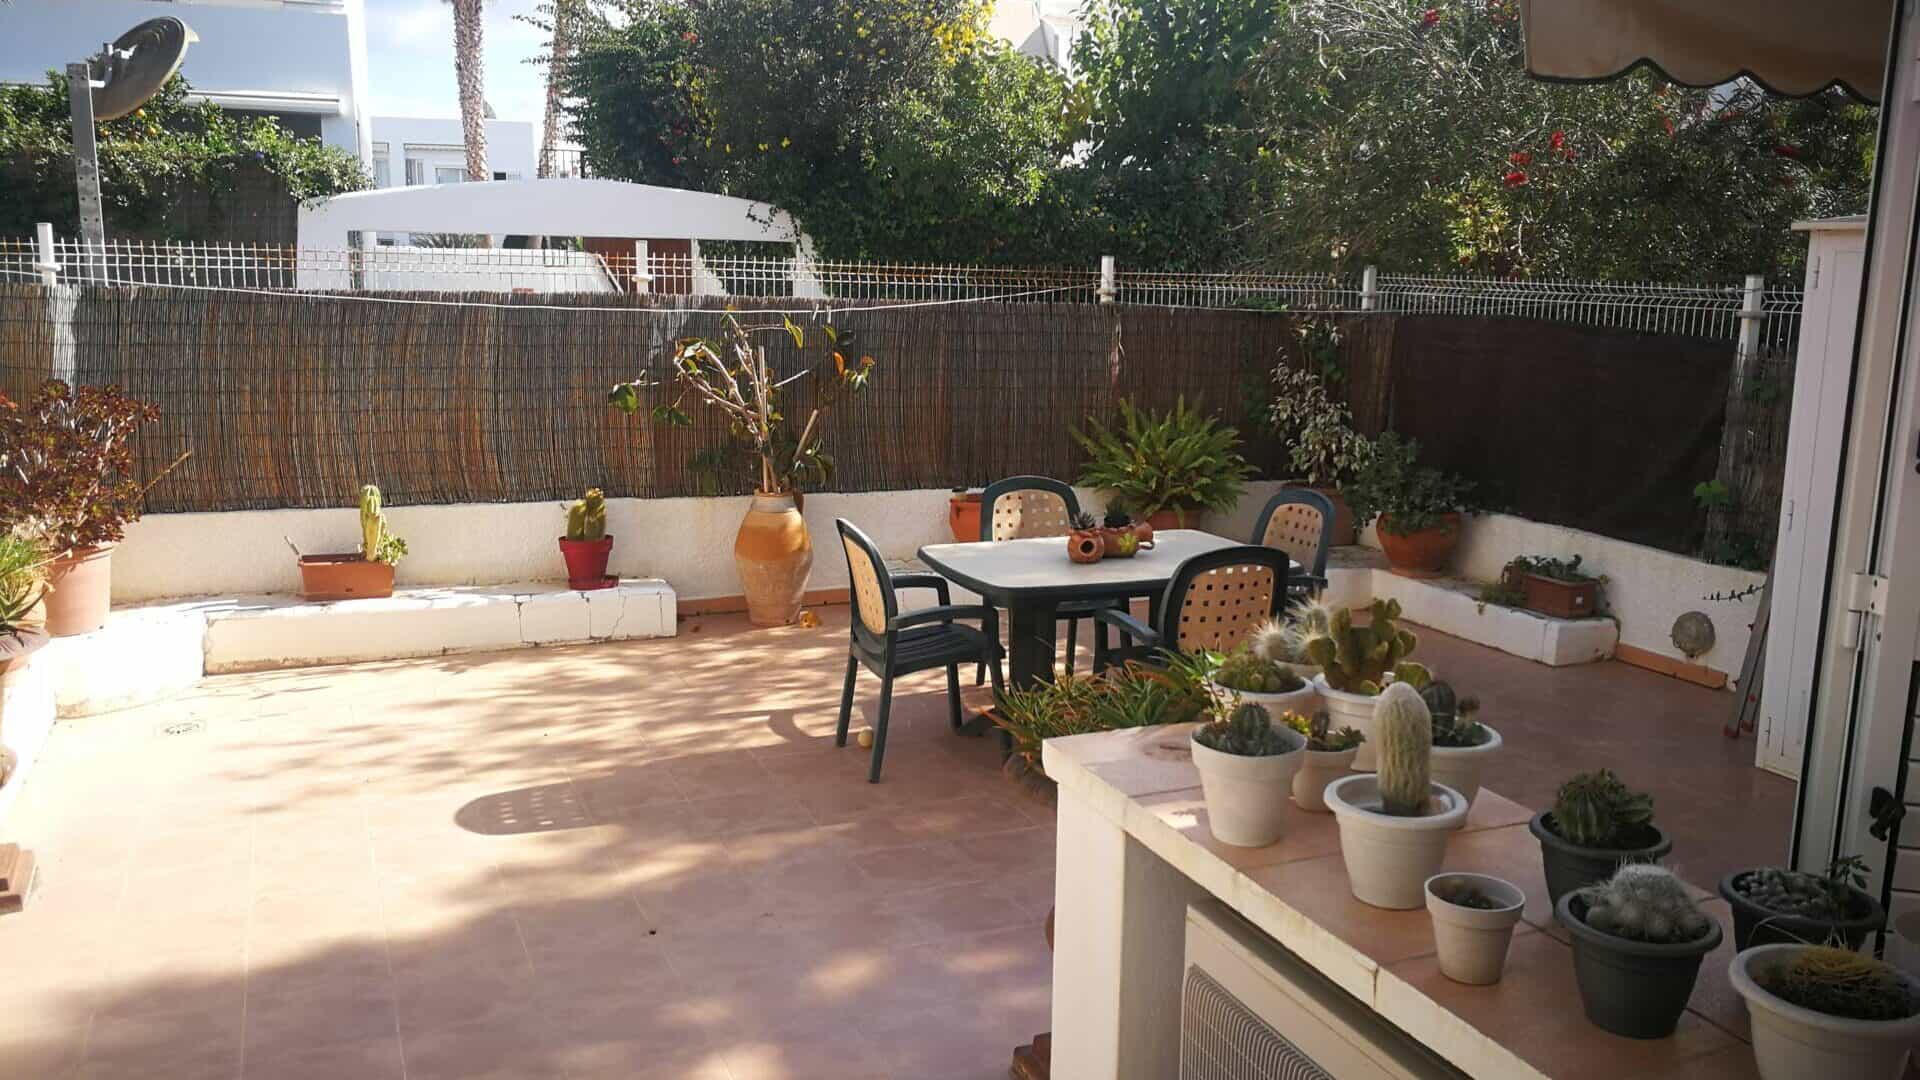 Nice apartment with garden and great location in Santa Eularia